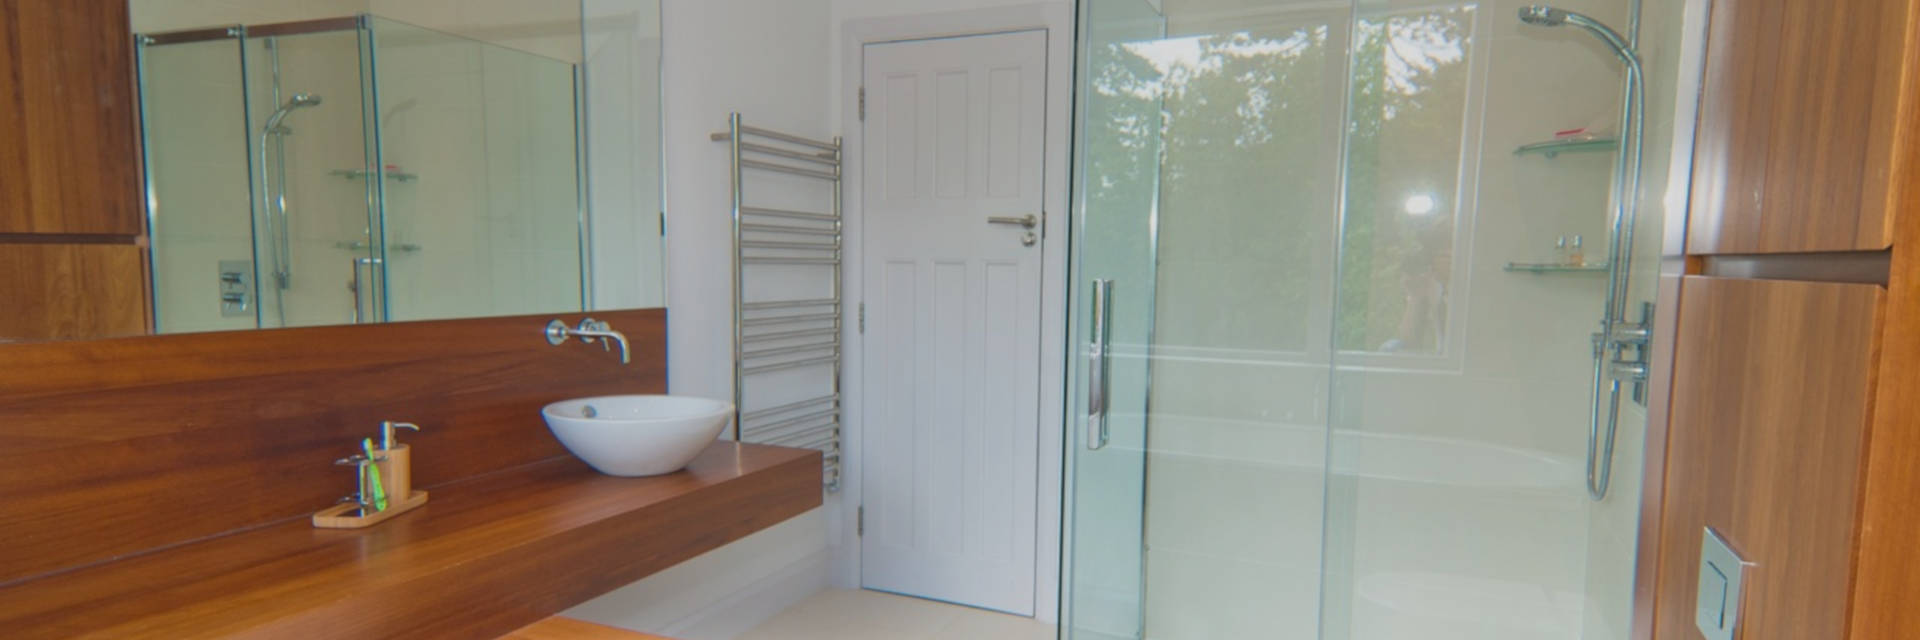 Essex and London Bathroom Installations